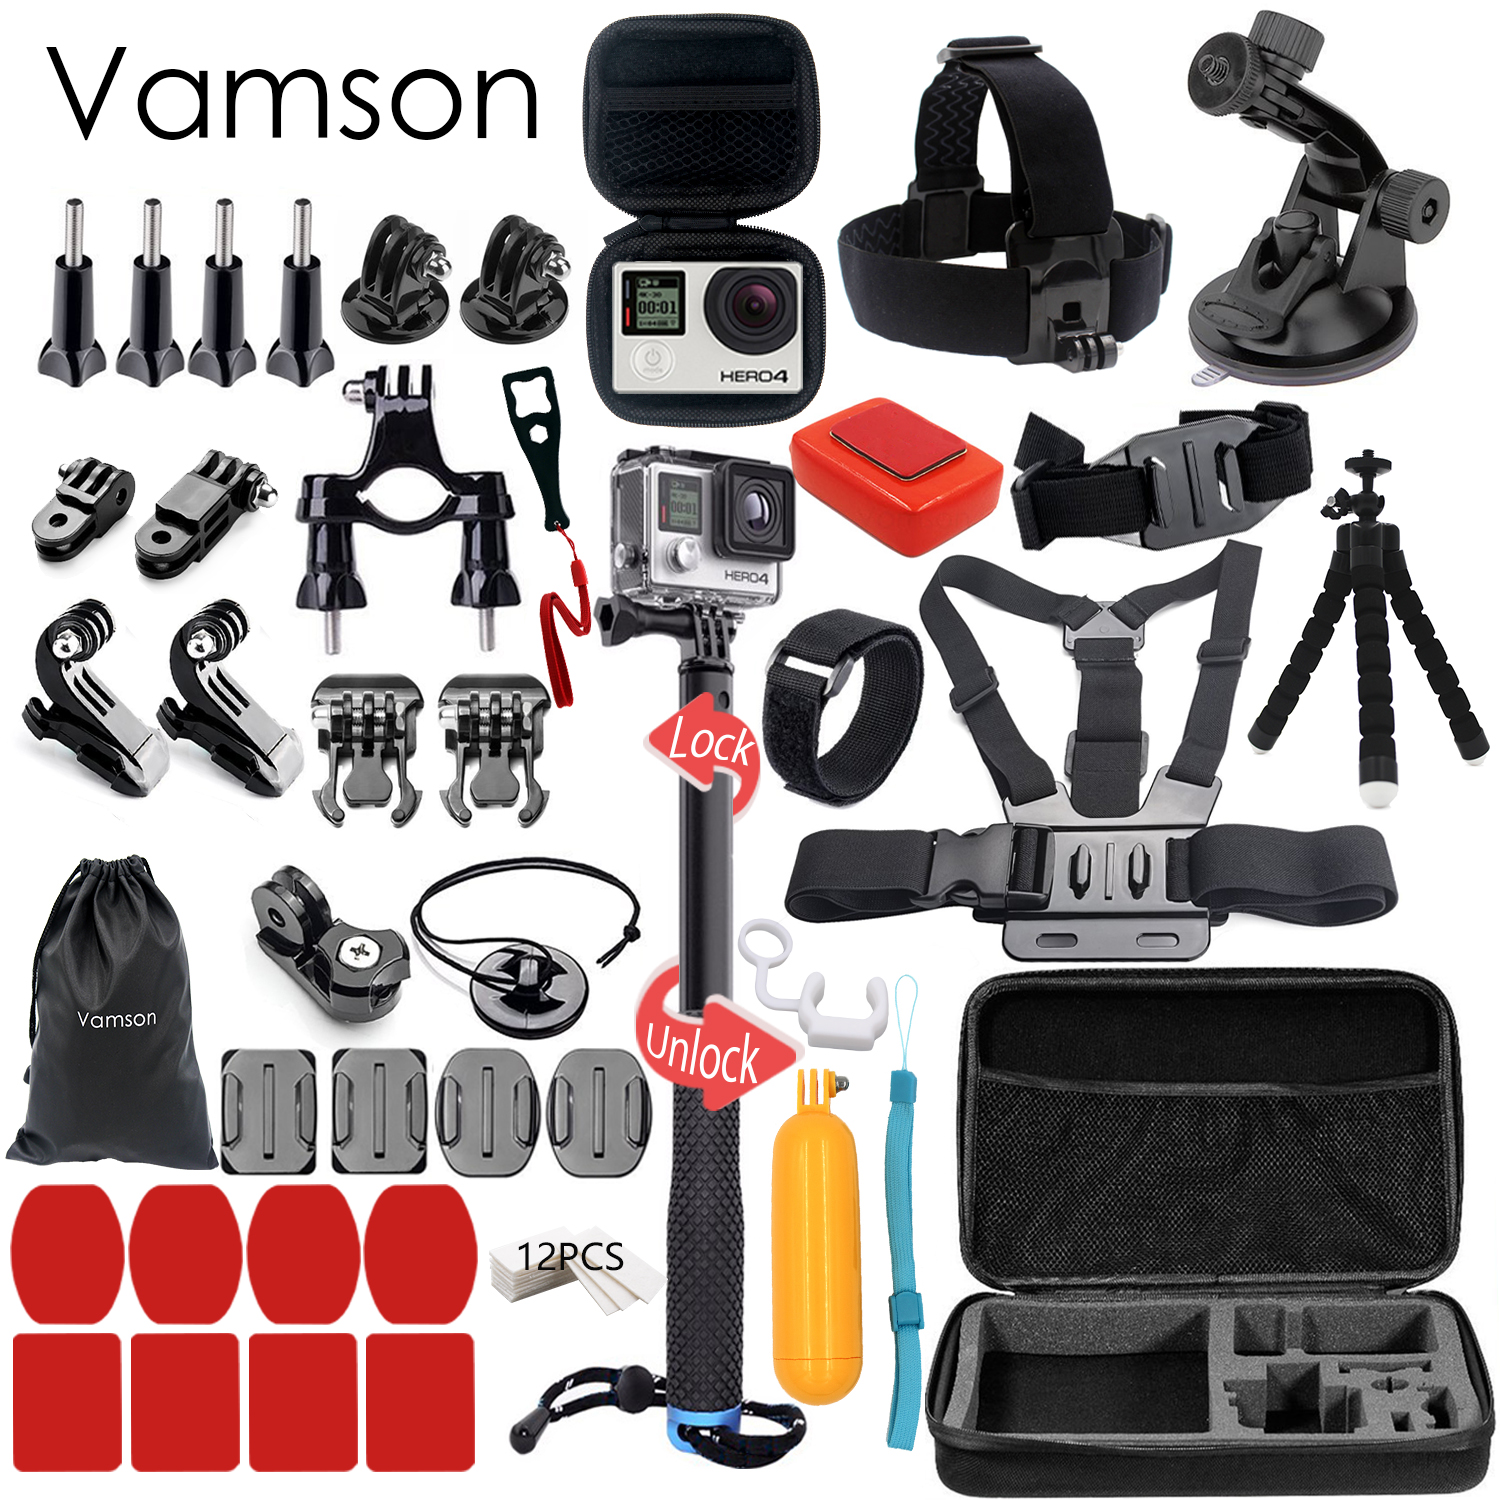 Vamson for Gopro Accessories Kit For Gopro Hero 5 Hero 4 Hero3 for Xiaomi for yi SJCAM SJ4000  VS88 tekcam for gopro accessories set gopro case bag for gopro hero3 hero 5 4 2 3 sjcam sj4000 sj5000 sj6 sj7 xiaomi yi 4k plus